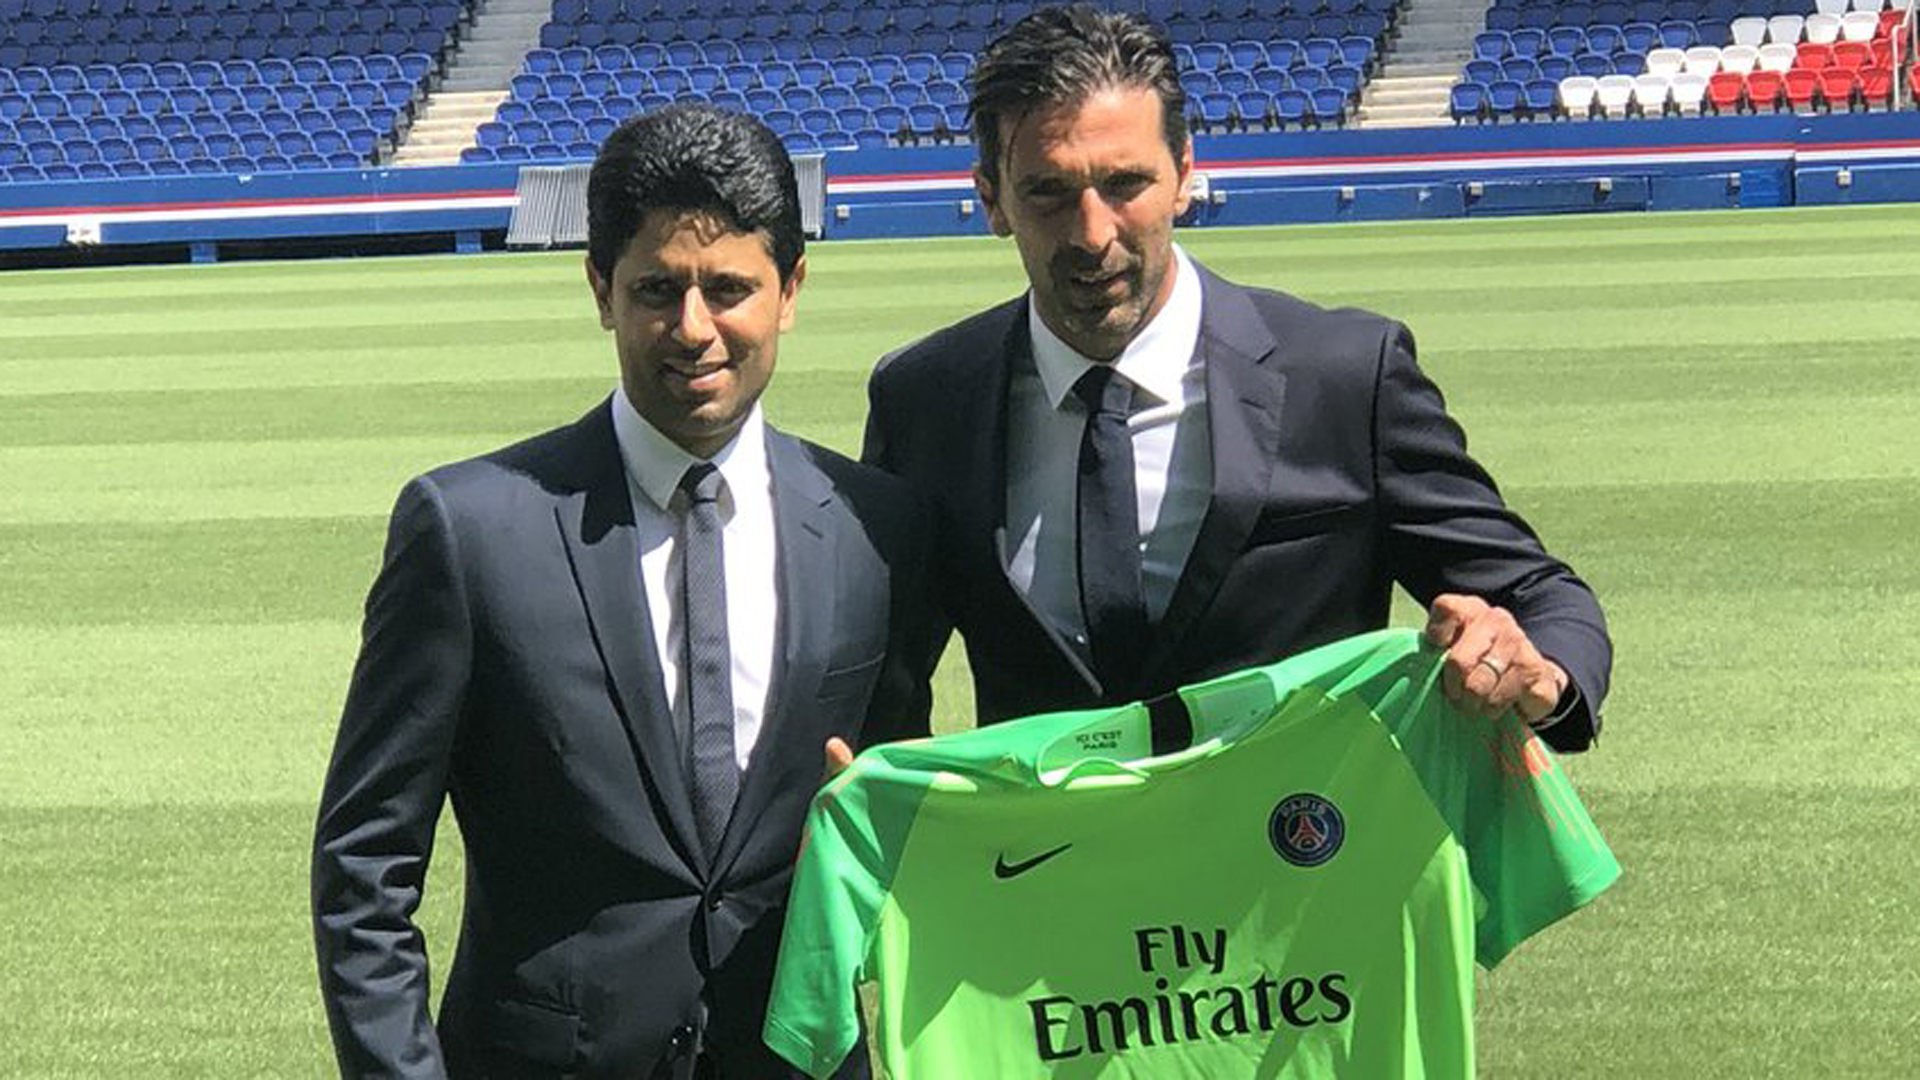 Gianluigi Buffon 'confirmed as Paris St Germain player on Monday'